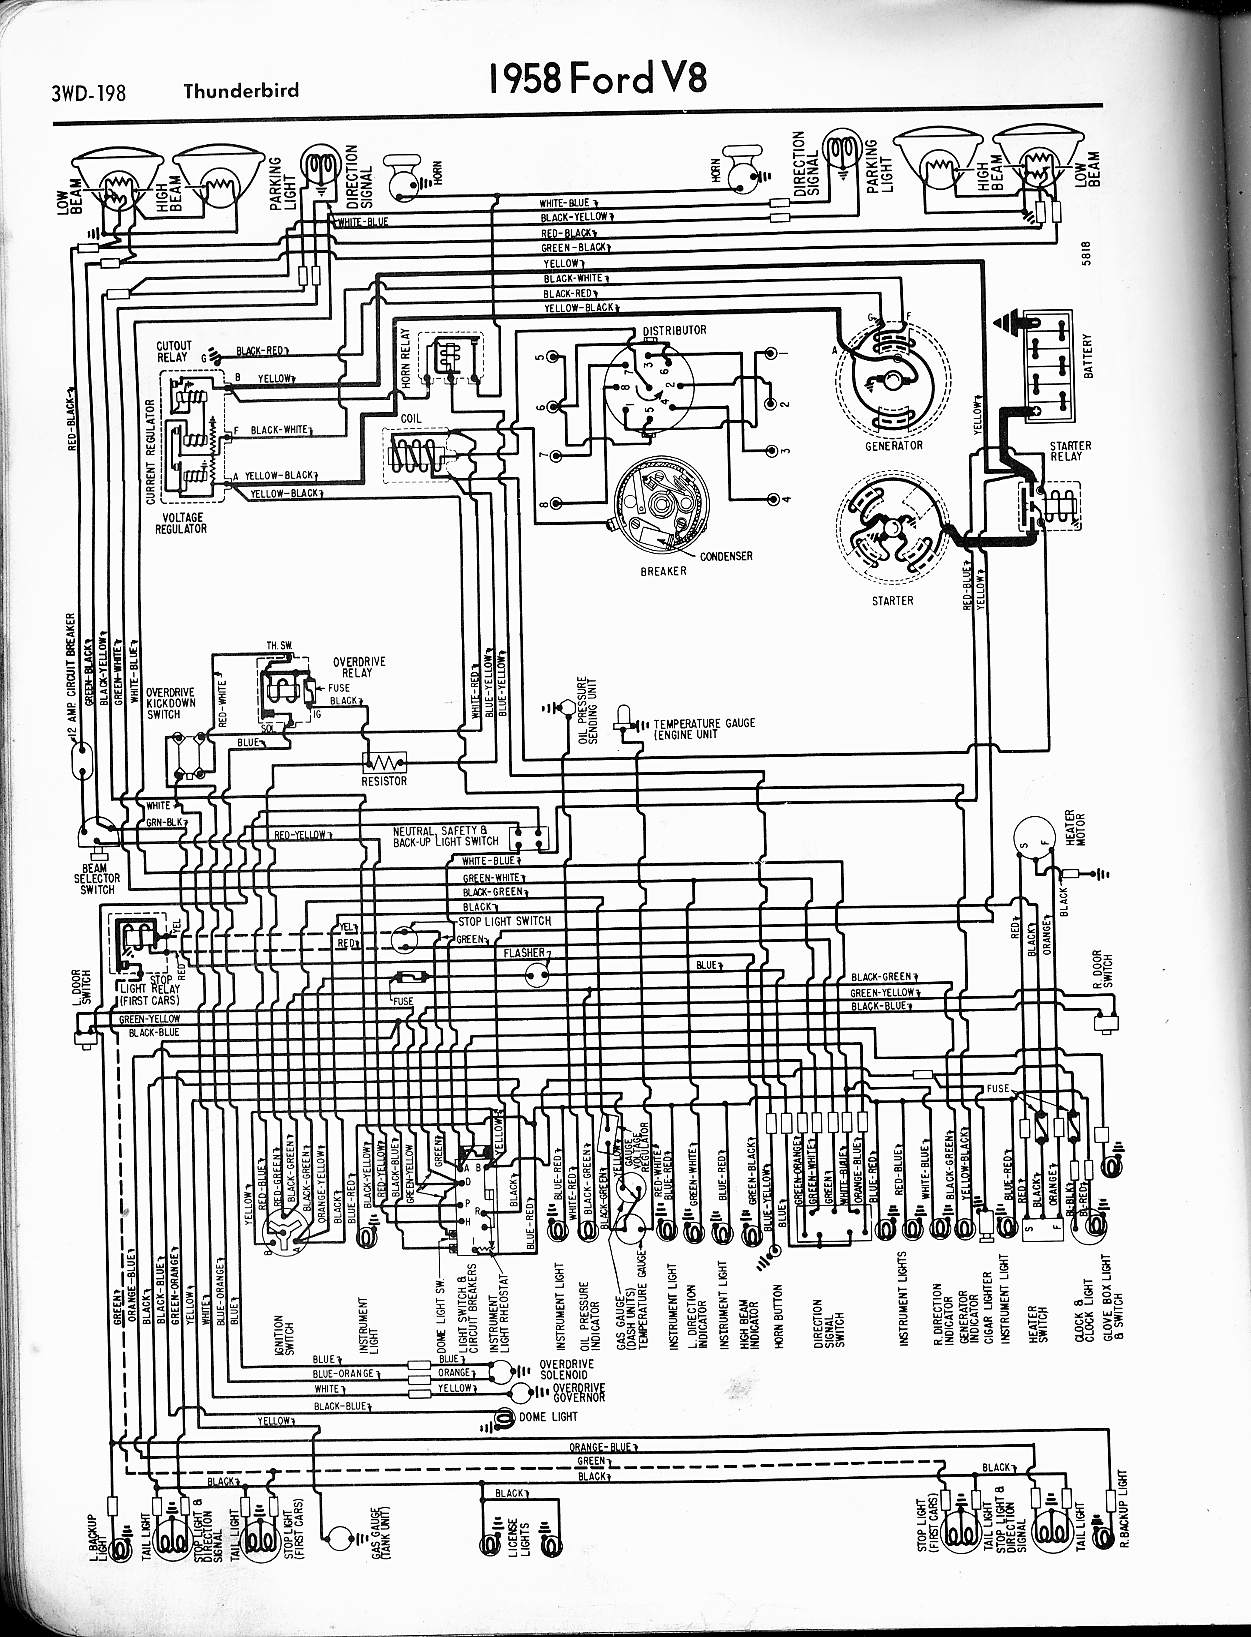 Ford Light Switch Wiring Diagram Library 65 Galaxie Schematic 57 Diagrams Rh Oldcarmanualproject Com 1959 F100